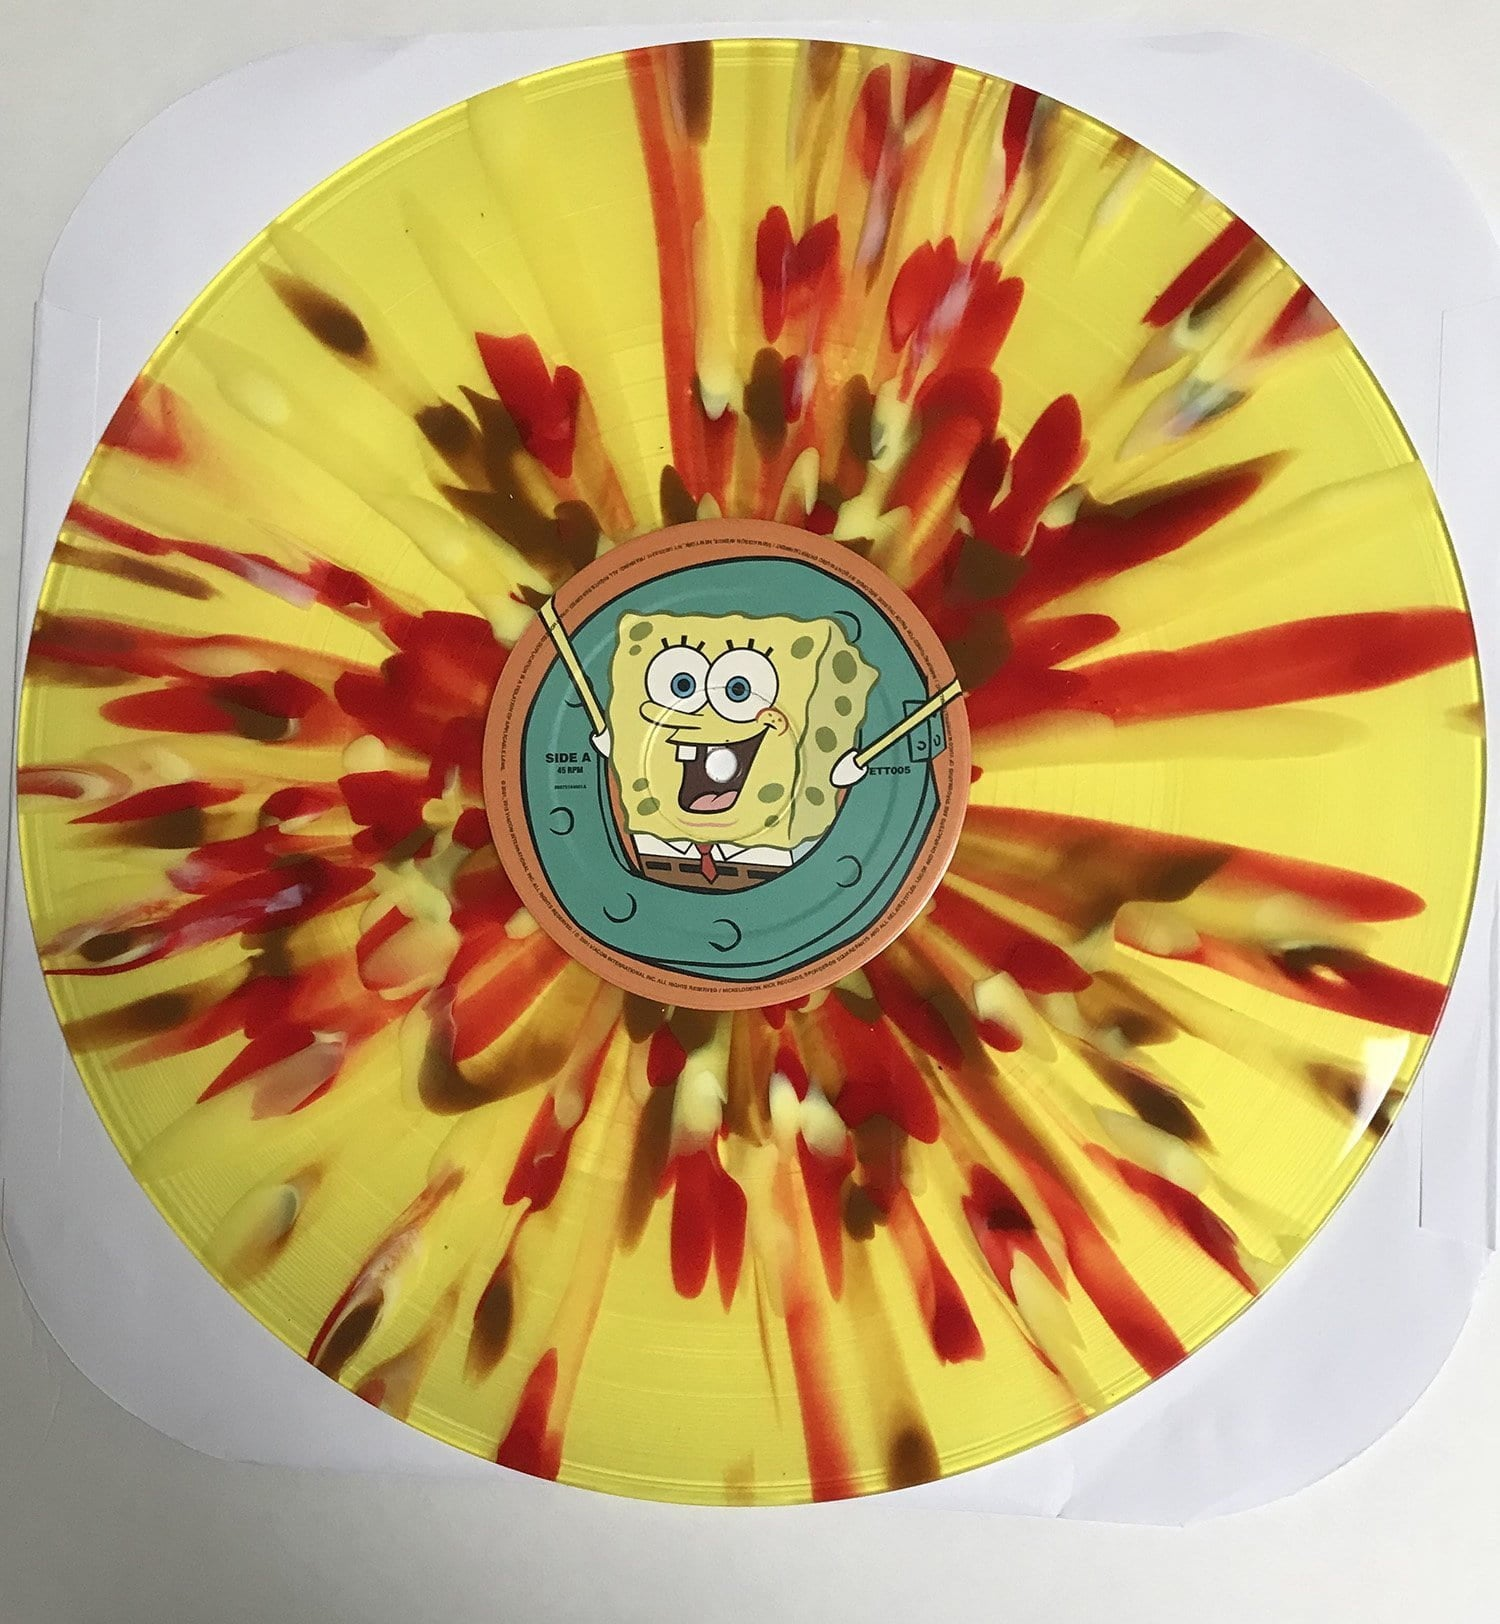 Various Artists - Spongebob Squarepants: Original Theme Highlights [LP] (Tri Color Split ''Spongebob Squarepants'' Yellow/White/Brown Colored Vinyl, foldout insert, limited to 500) - Urban Vinyl | Records, Headphones, and more.